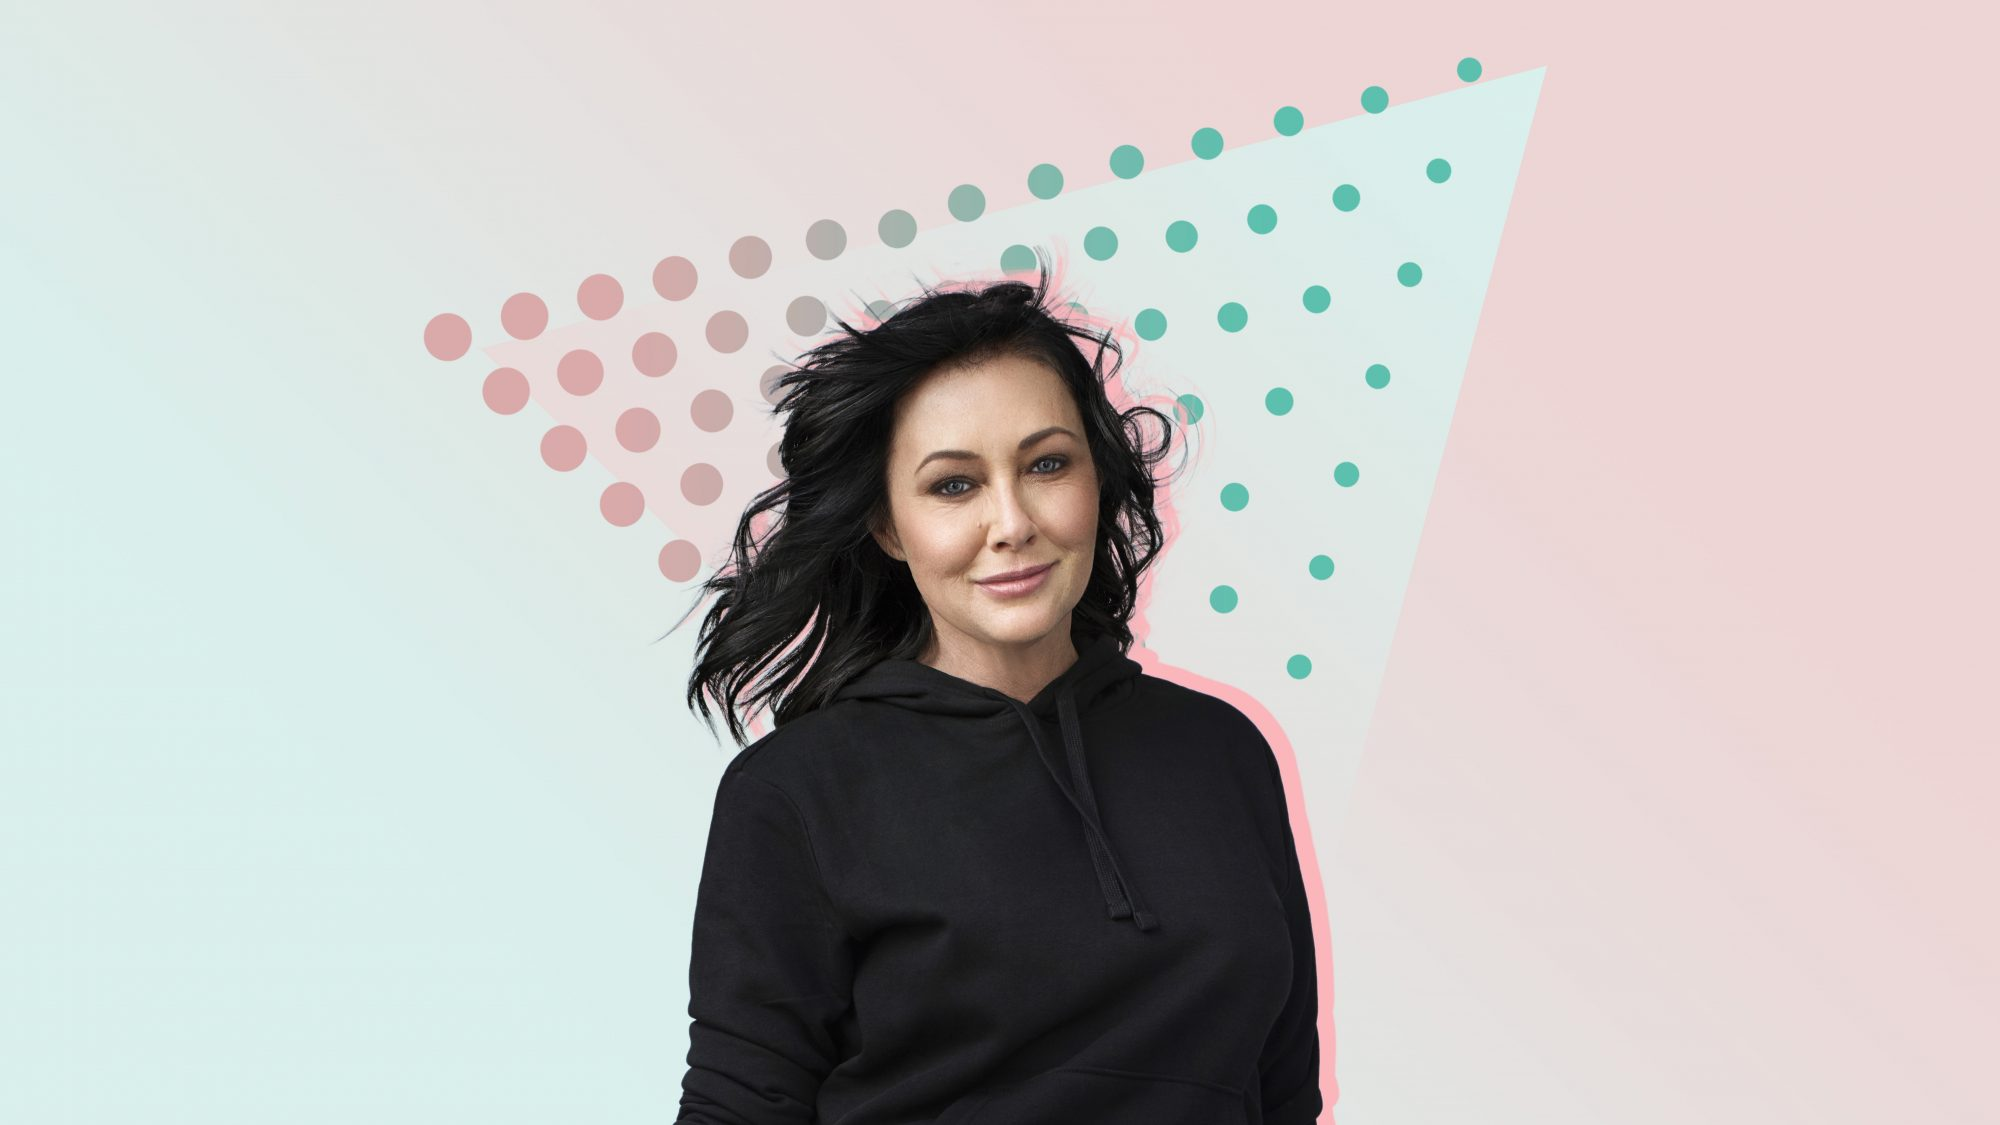 shannen-doherty-talks-cancer shannen-doherty breast-cancer woman health cancer survivor celebrity